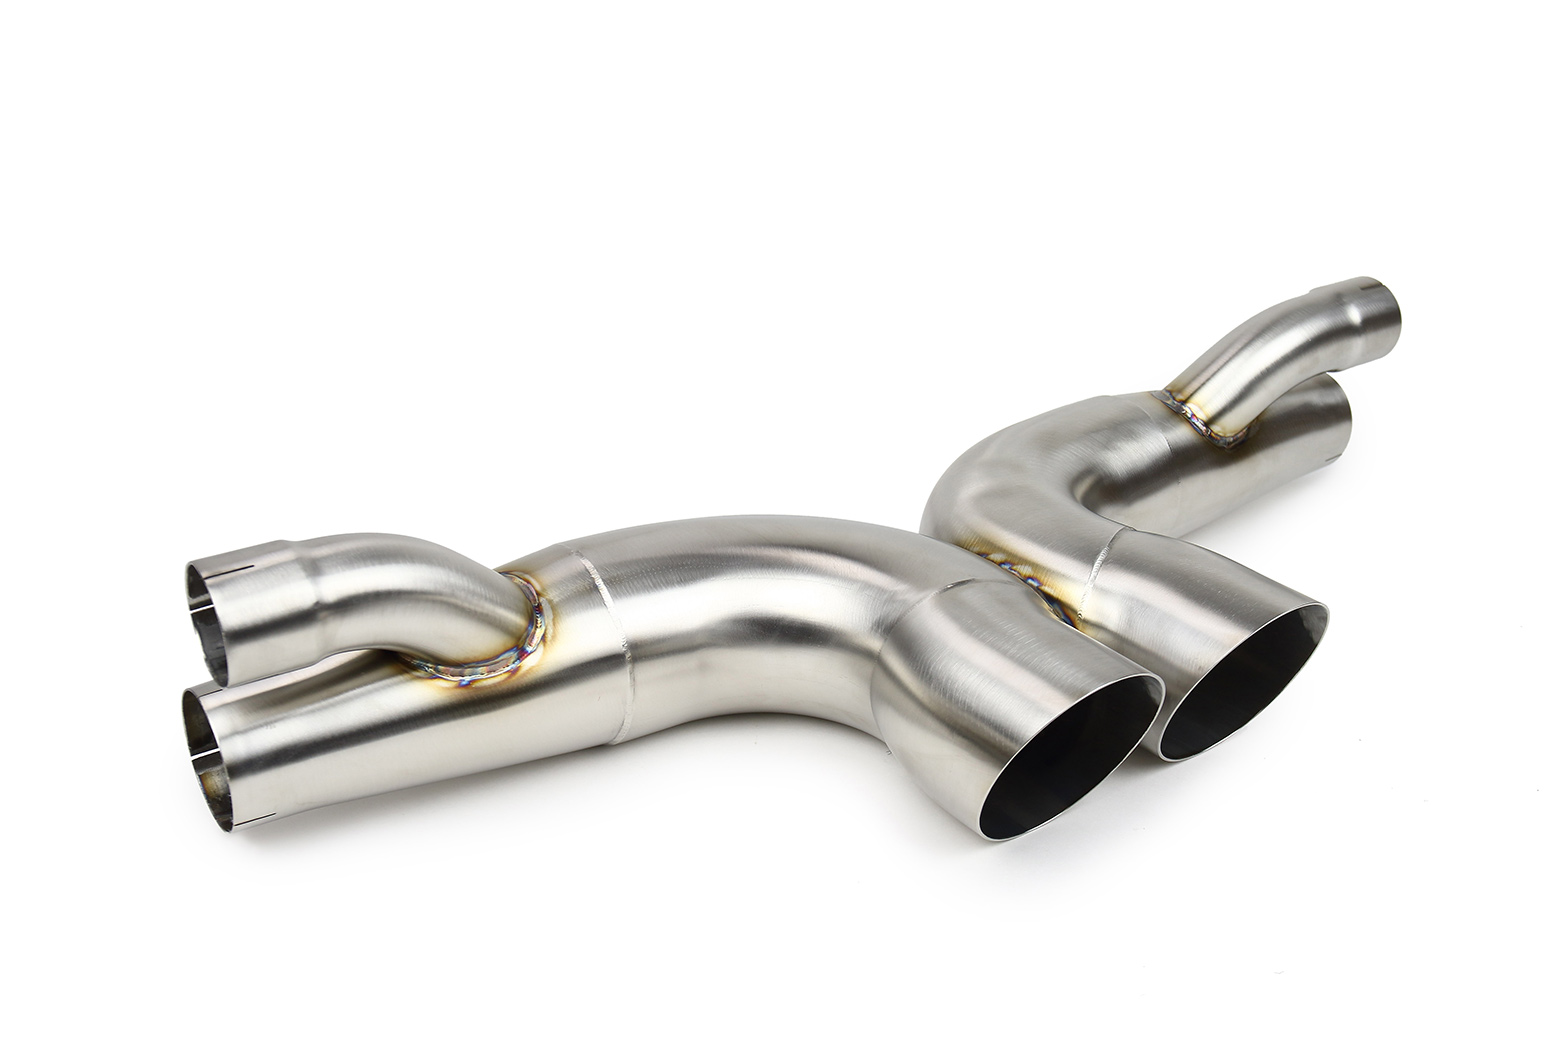 BBi Autosport Porsche 911 GT3 Street Cup (997) Center Section Exhaust Bypass